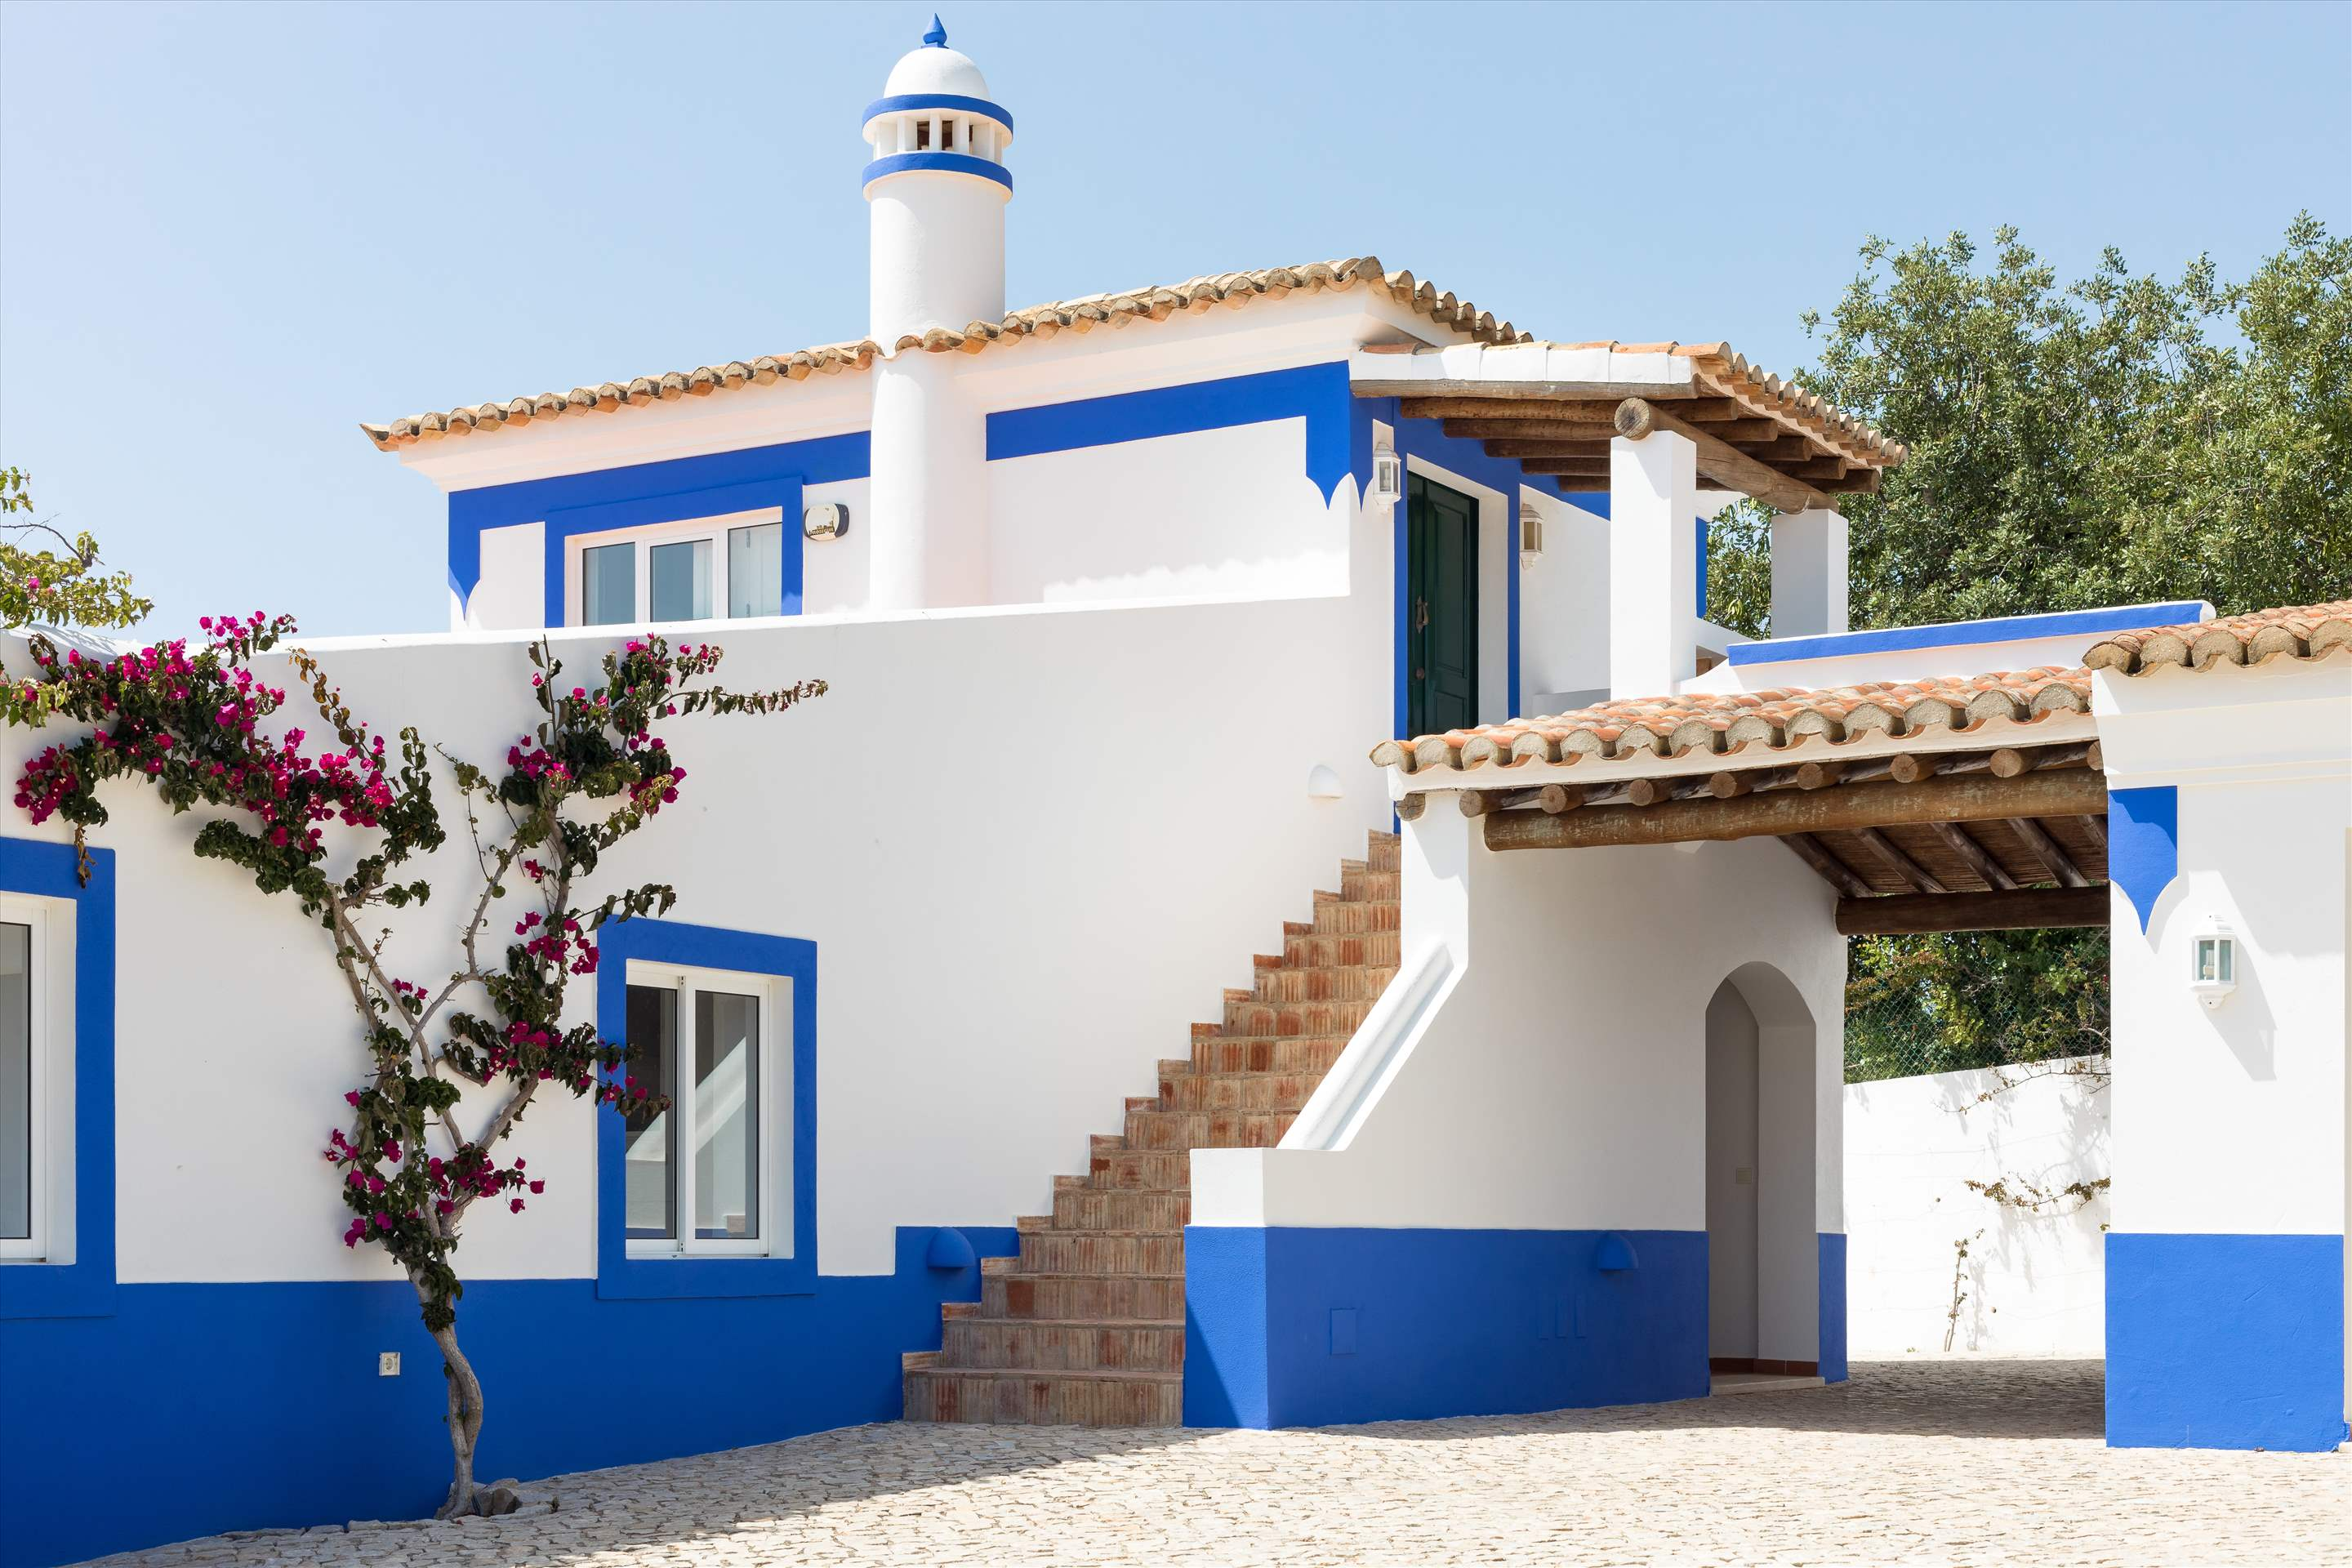 Casa da Montanha, 11-12 persons, 7 bedroom villa in Vilamoura Area, Algarve Photo #18